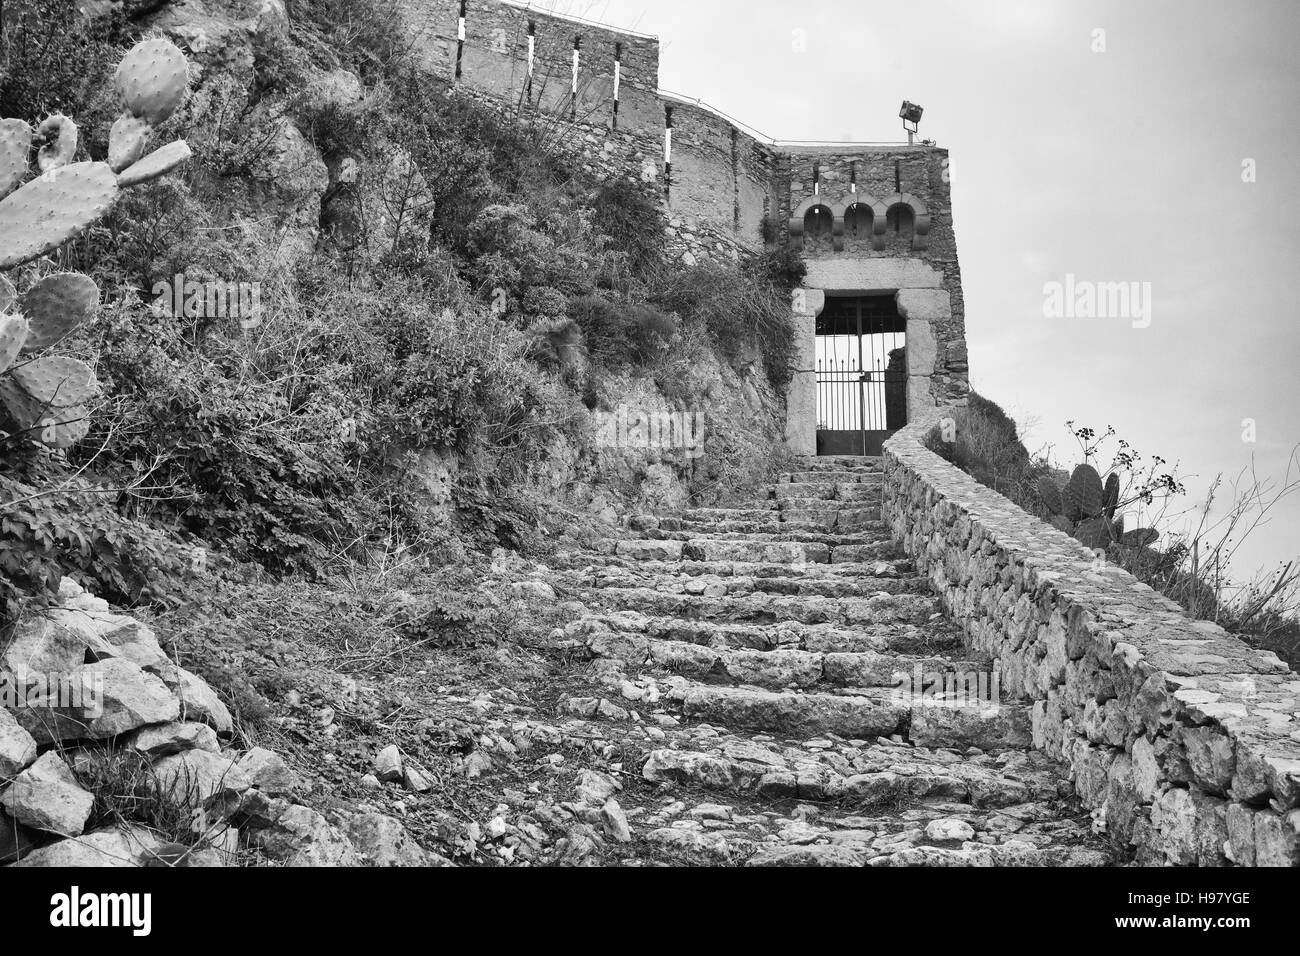 Medieval castle of Forza d'Agrò, Messina, Sicily - Stock Image